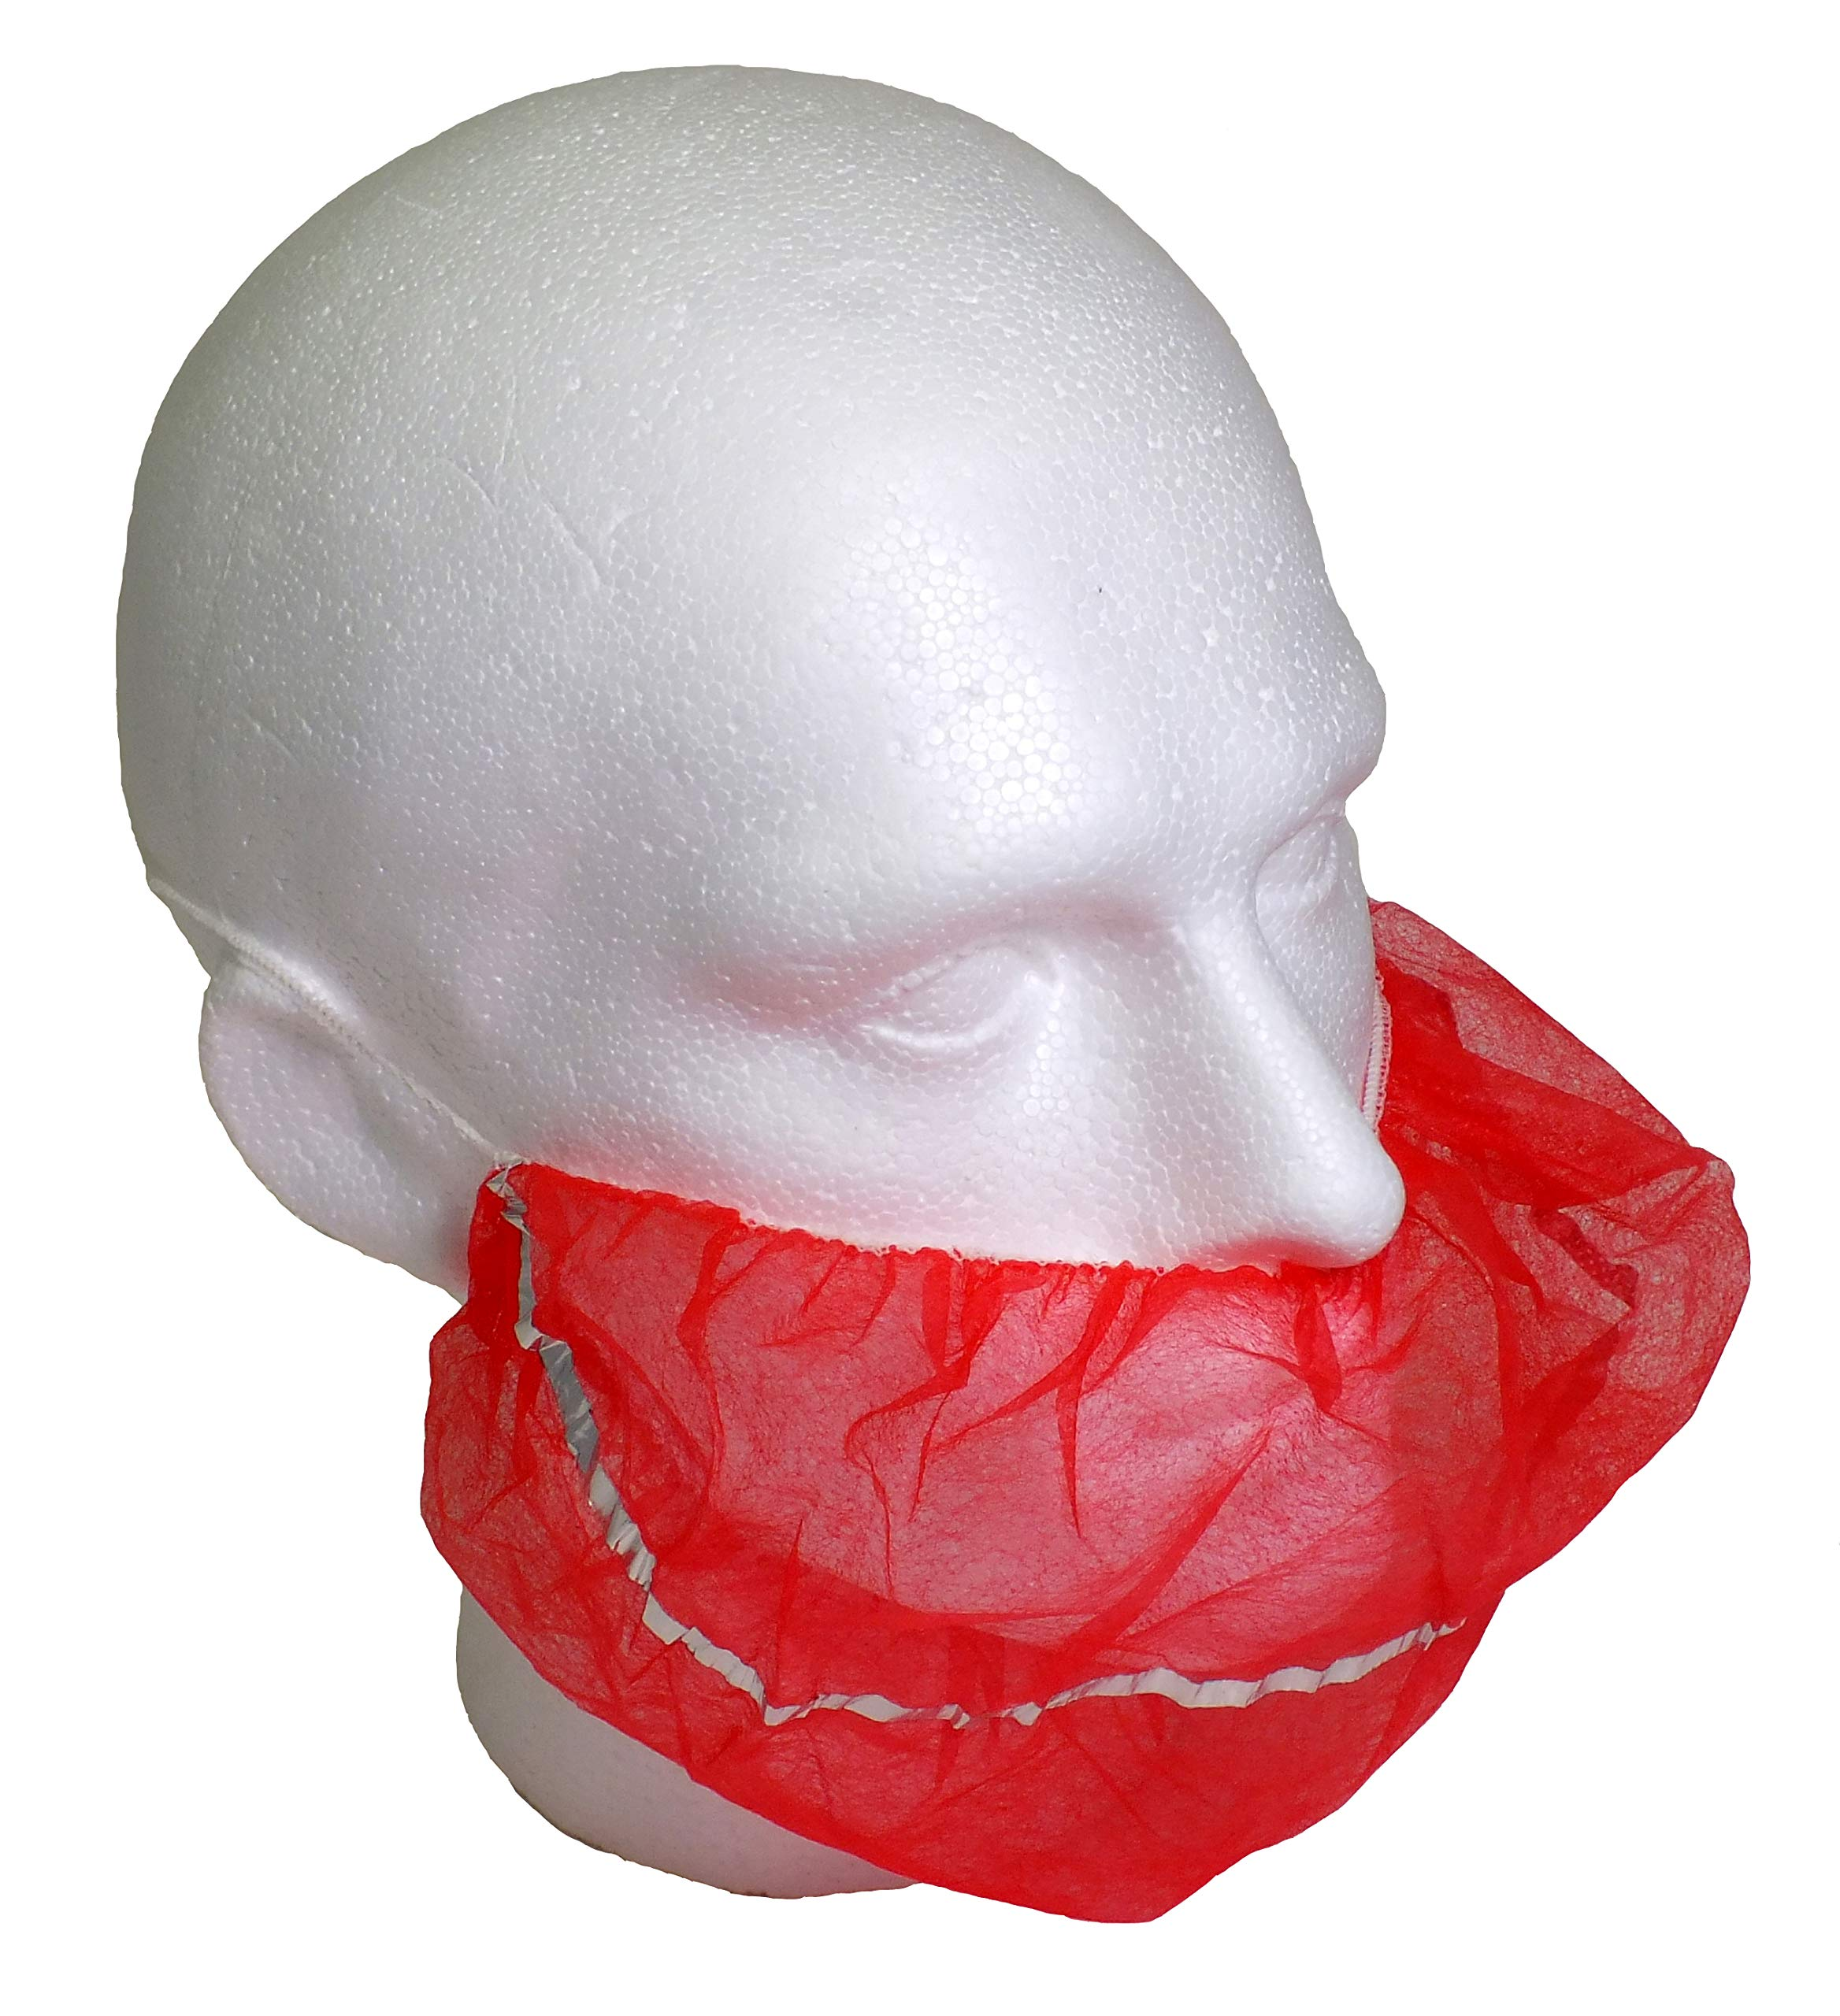 Detectable Non Woven Beard Cover Red Pack 500 by Detectamet Food Safe Detectable Products